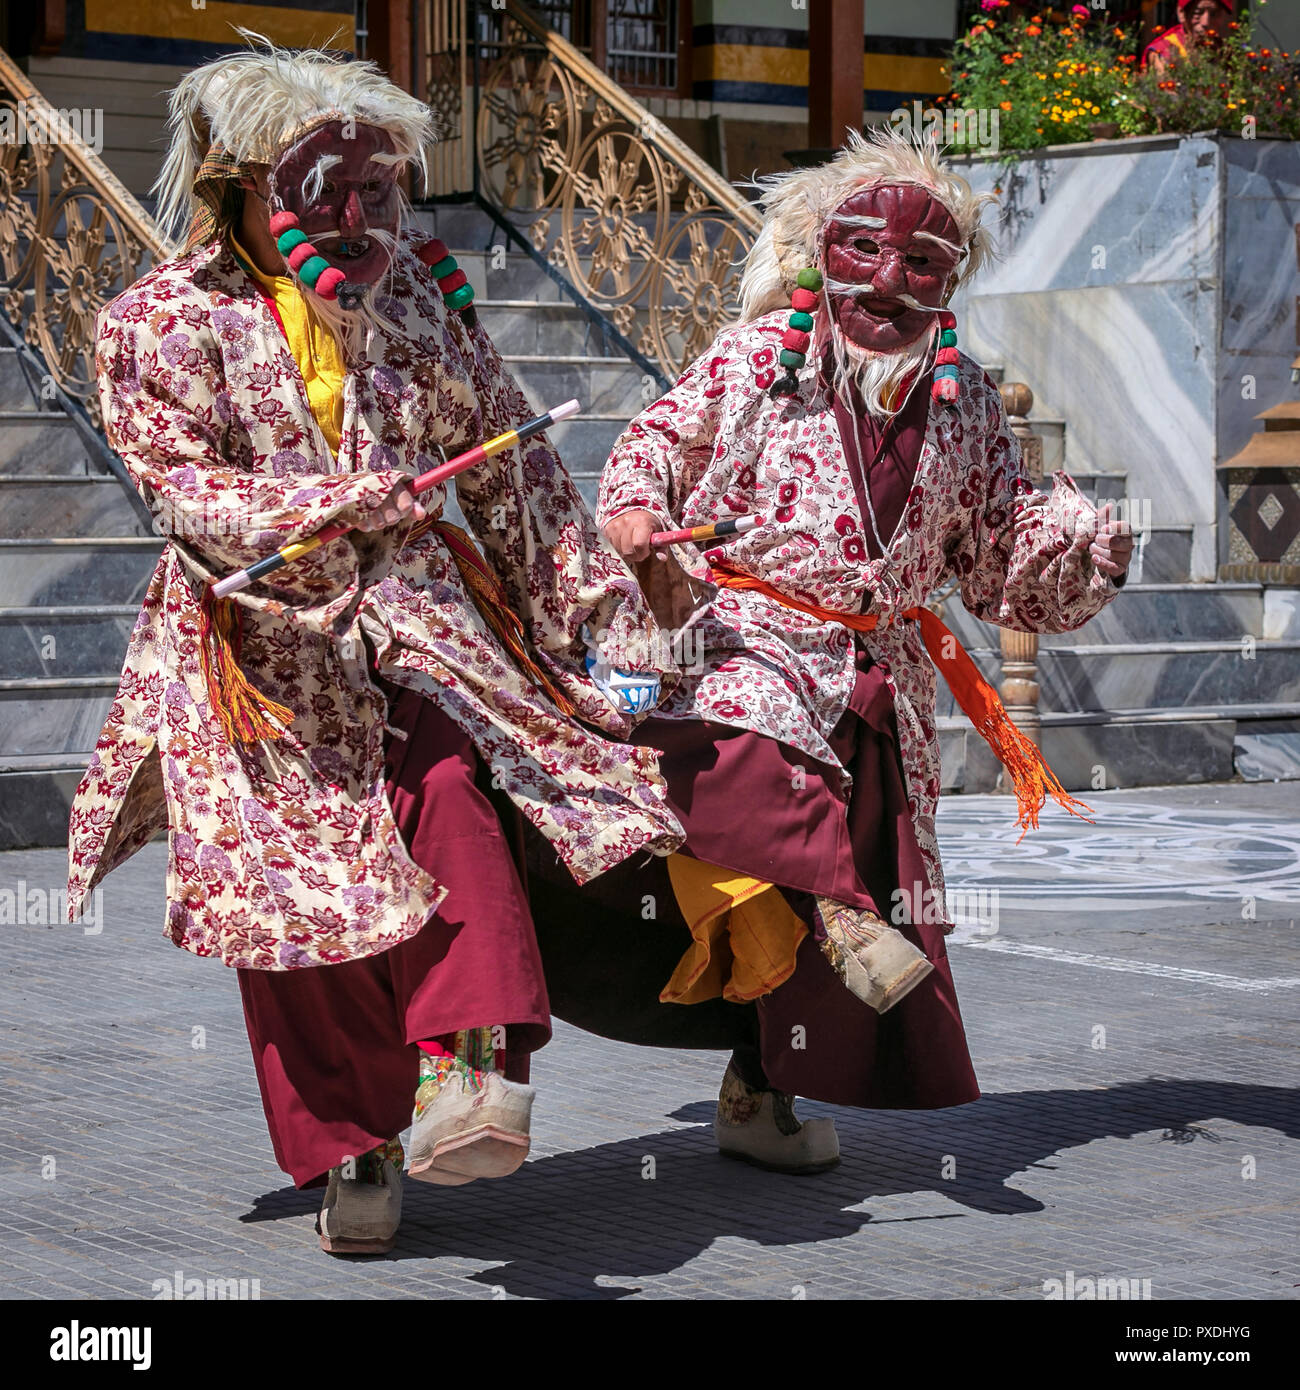 Cham dance performed by monks at Ladakh Jo Khang Temple, Leh, Ladakh, Kashmir, India - Stock Image